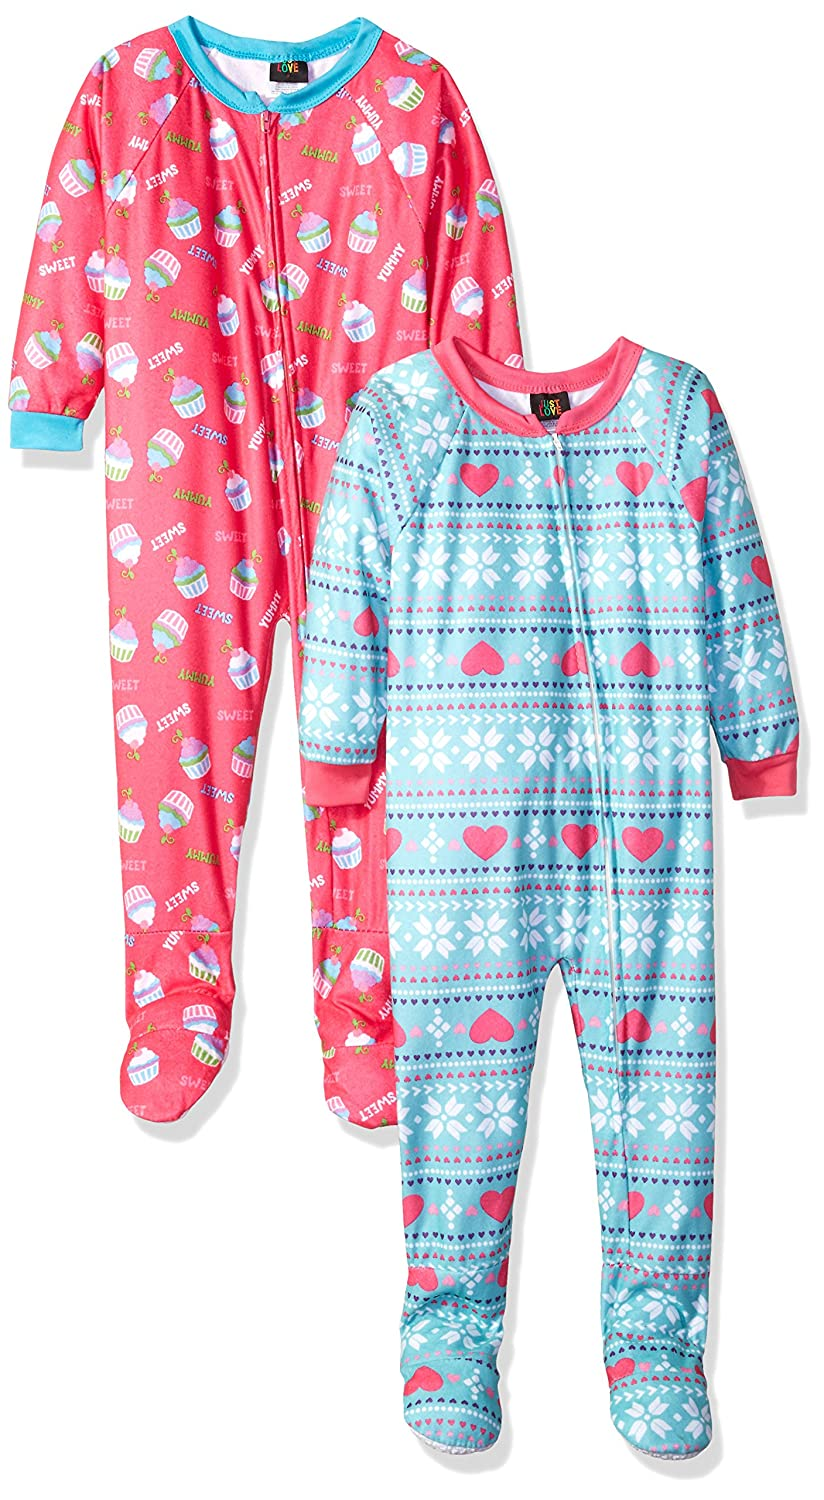 9b7a9b20e Amazon.com  Just Love Girls Footed Pajamas Flannel Blanket Sleepers ...